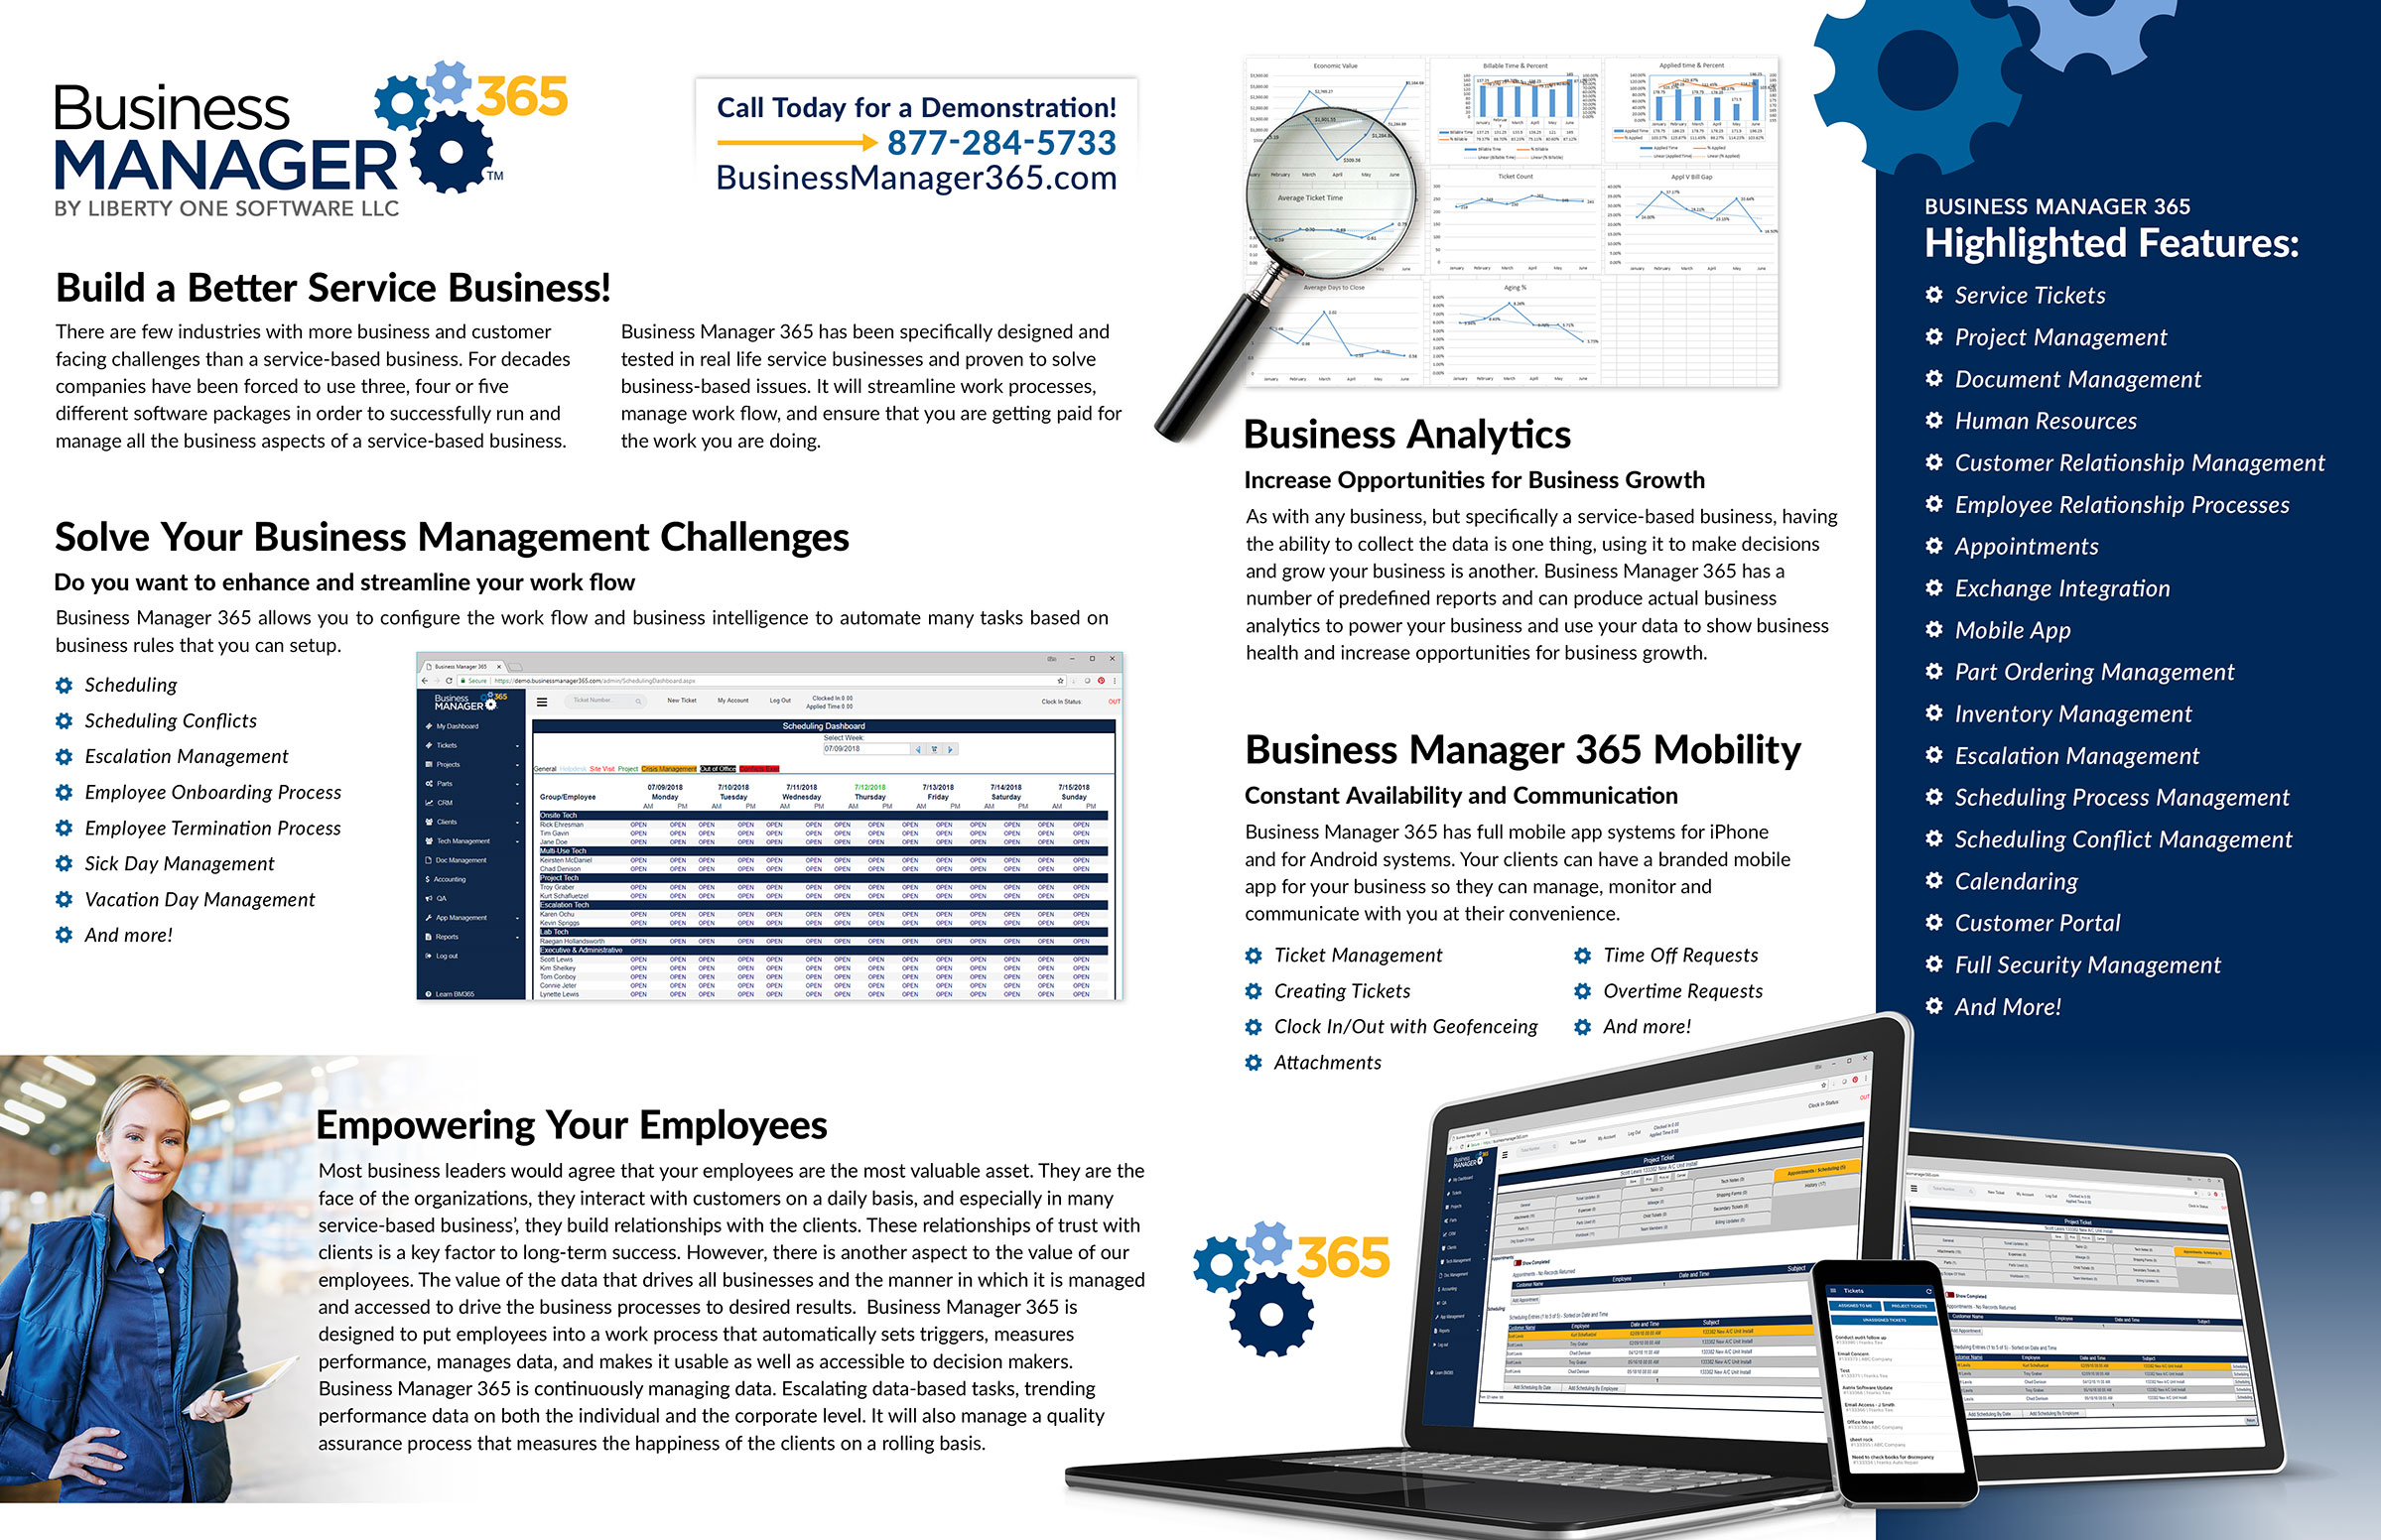 Business Manager 365 July 2018 Newsletter pages 2 and 3